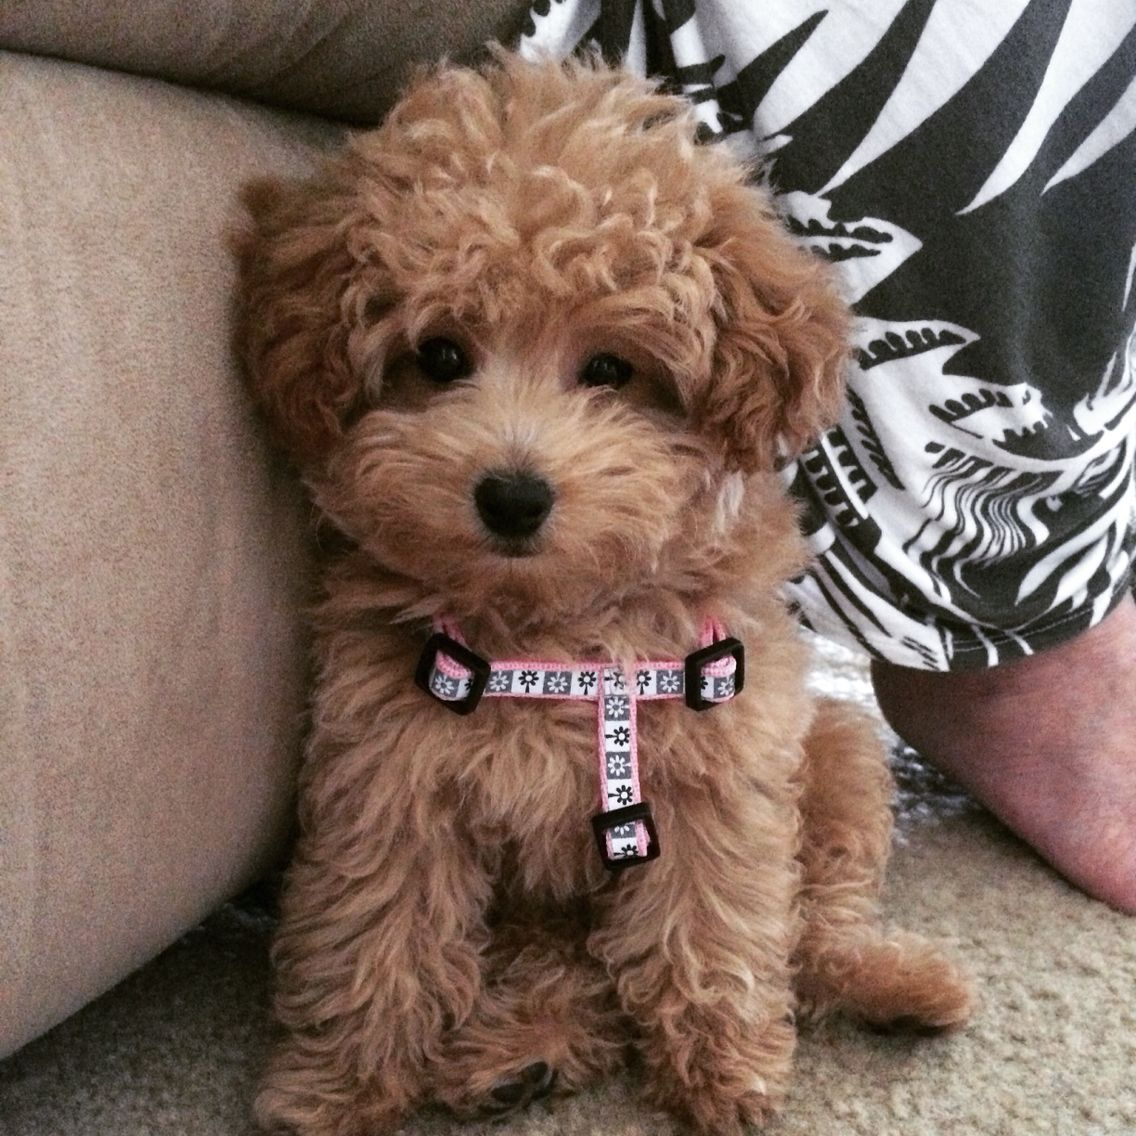 Little Baby Toy Poodle Smooches Toy Poodle Pooch Poodle